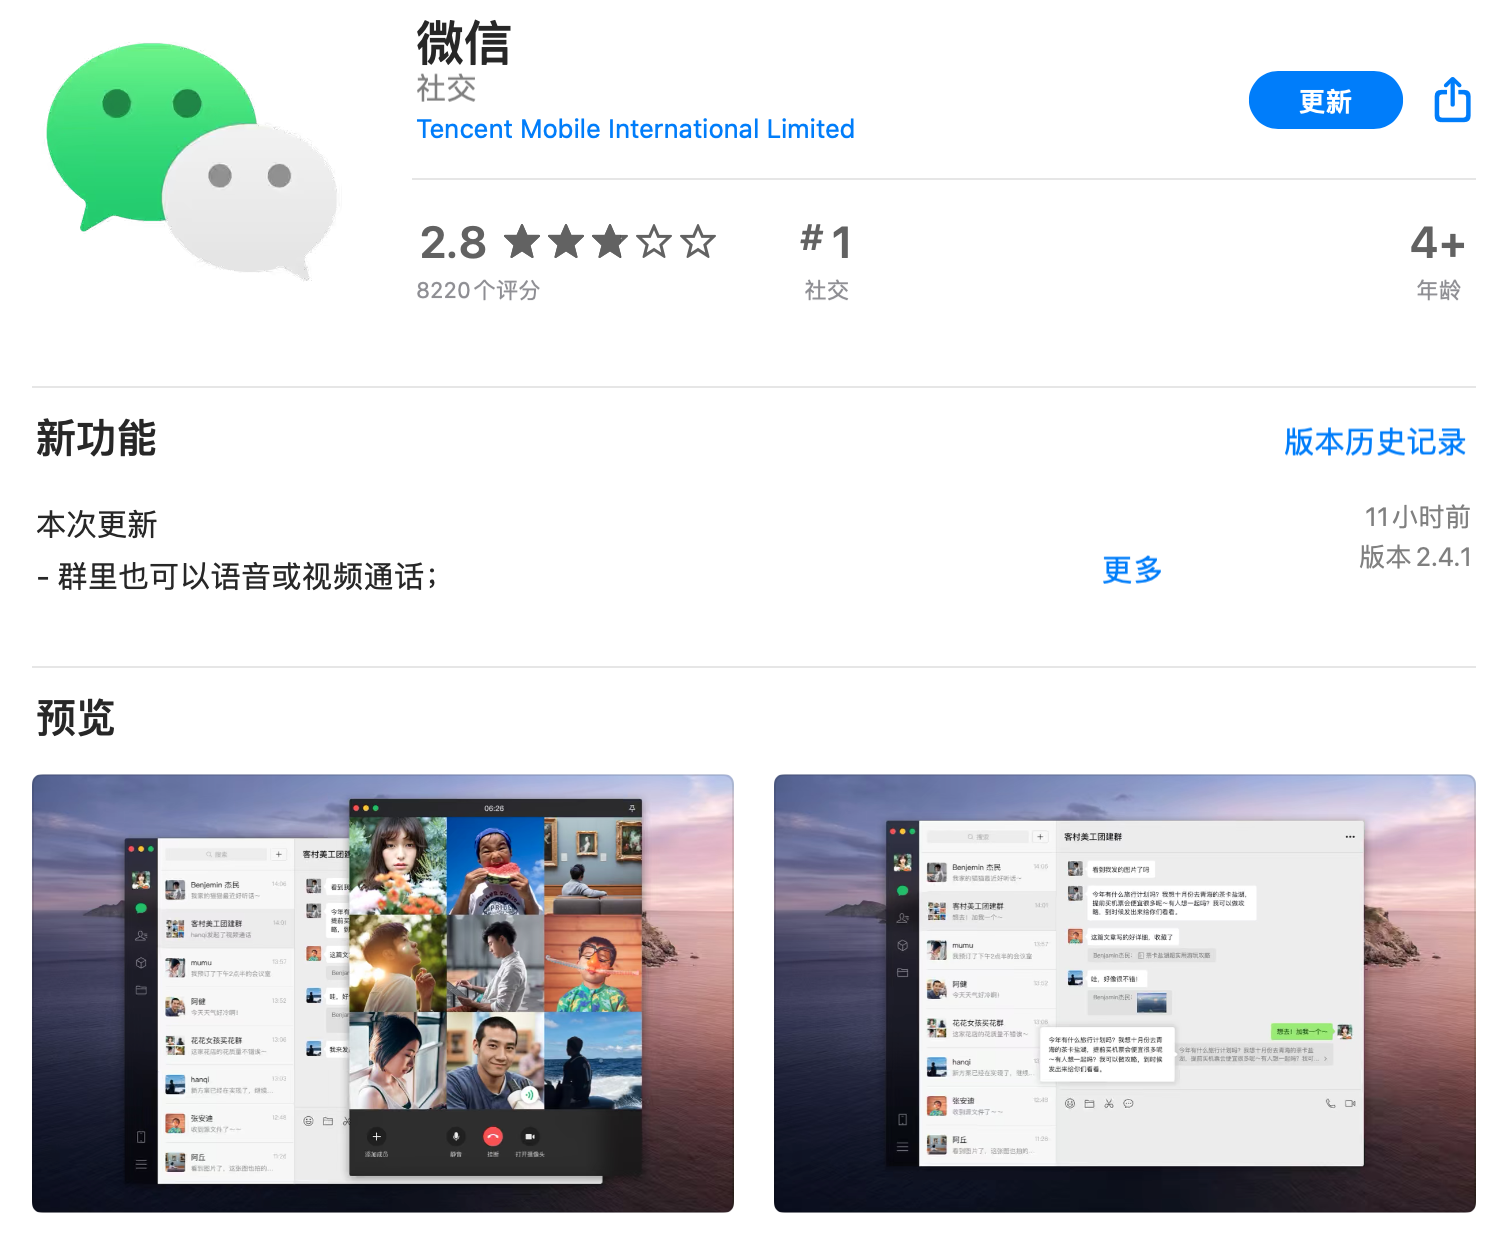 WeChat for macOS gets version 2.4.1 update, supports group audio and video-CnTechPost